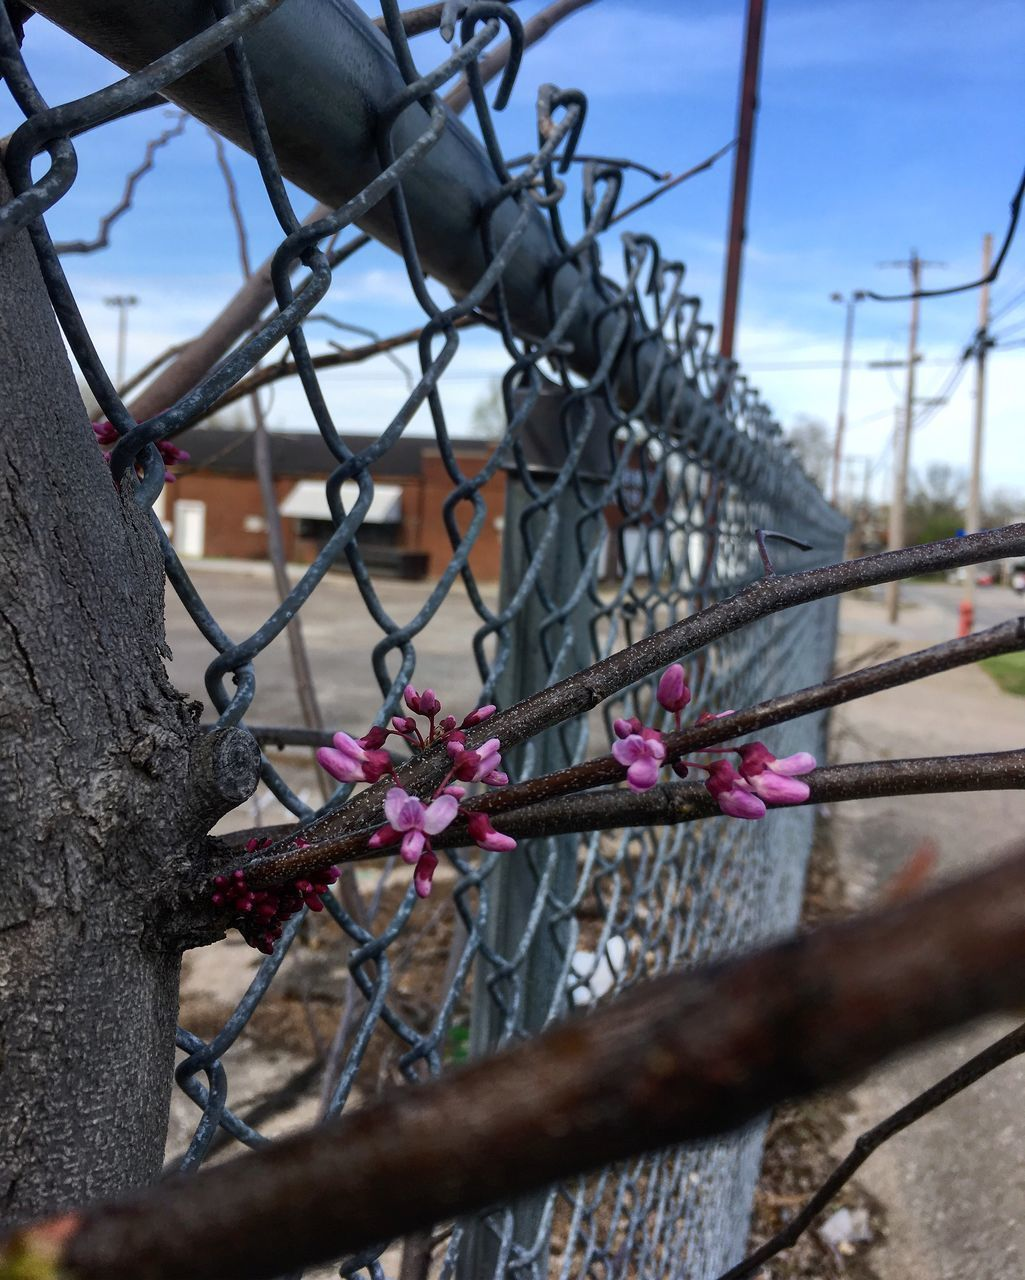 flower, fence, flowering plant, plant, boundary, barrier, nature, day, close-up, no people, focus on foreground, pink color, safety, metal, security, tree, sky, protection, outdoors, chainlink fence, springtime